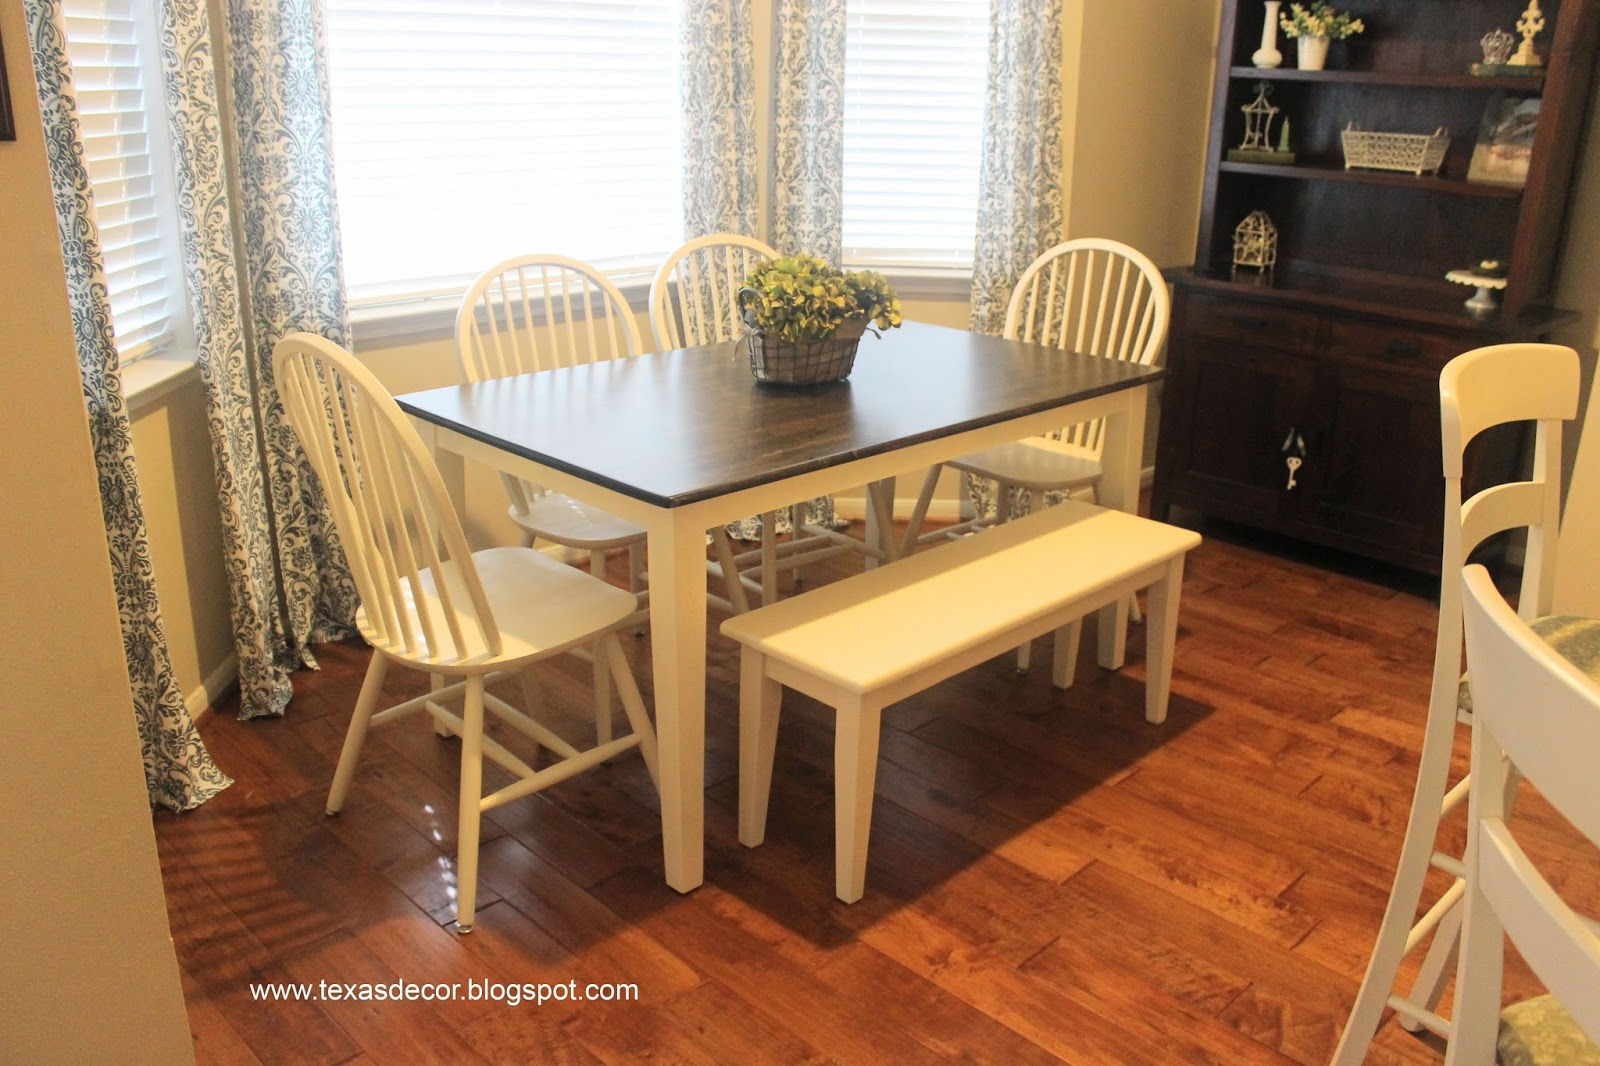 texas decor painted and stained kitchen table a tutorial rh texasdecor blogspot com